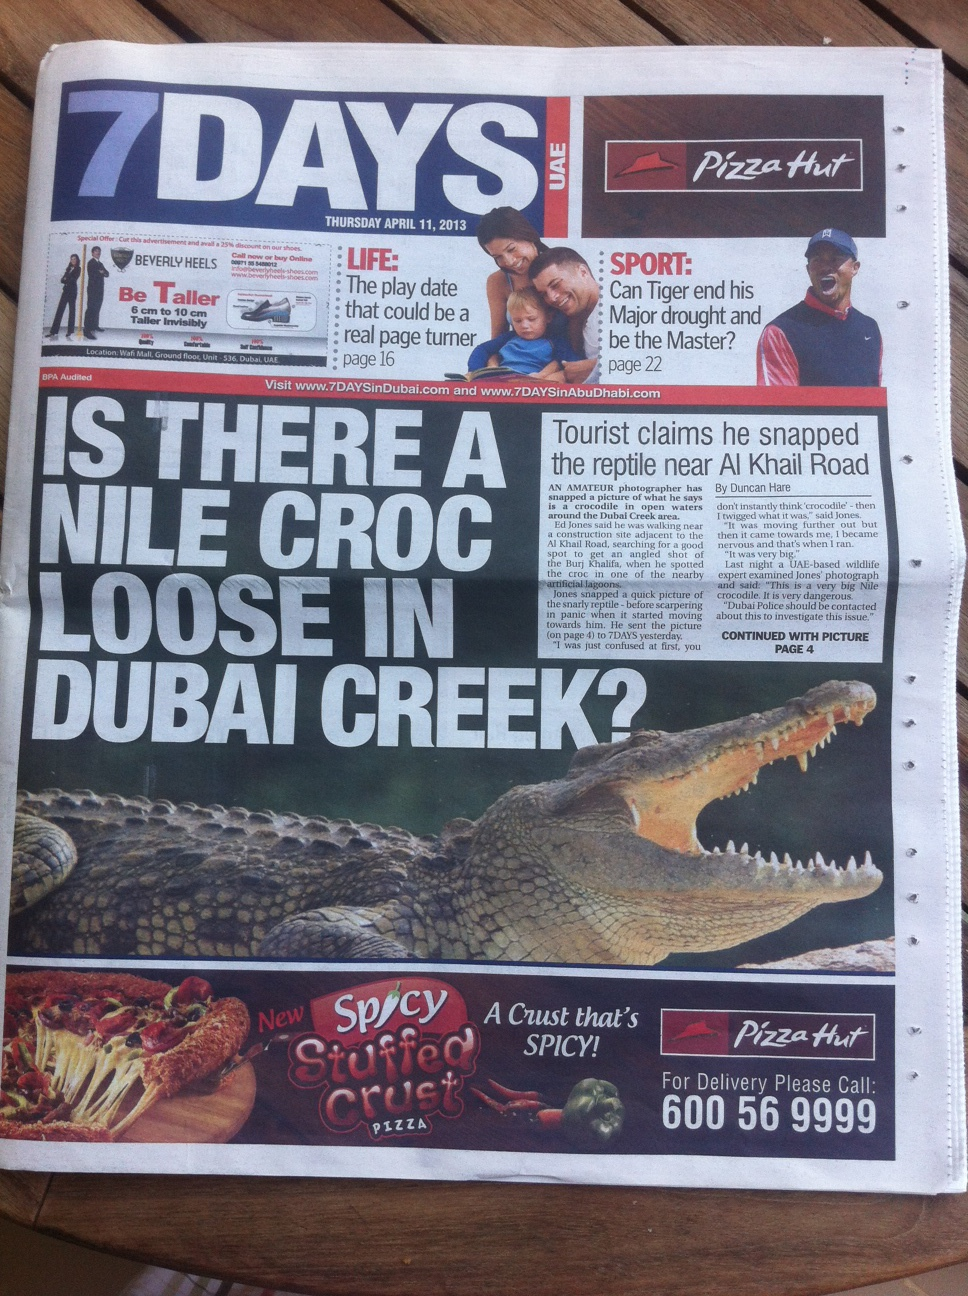 7Days fake croc cover.JPG